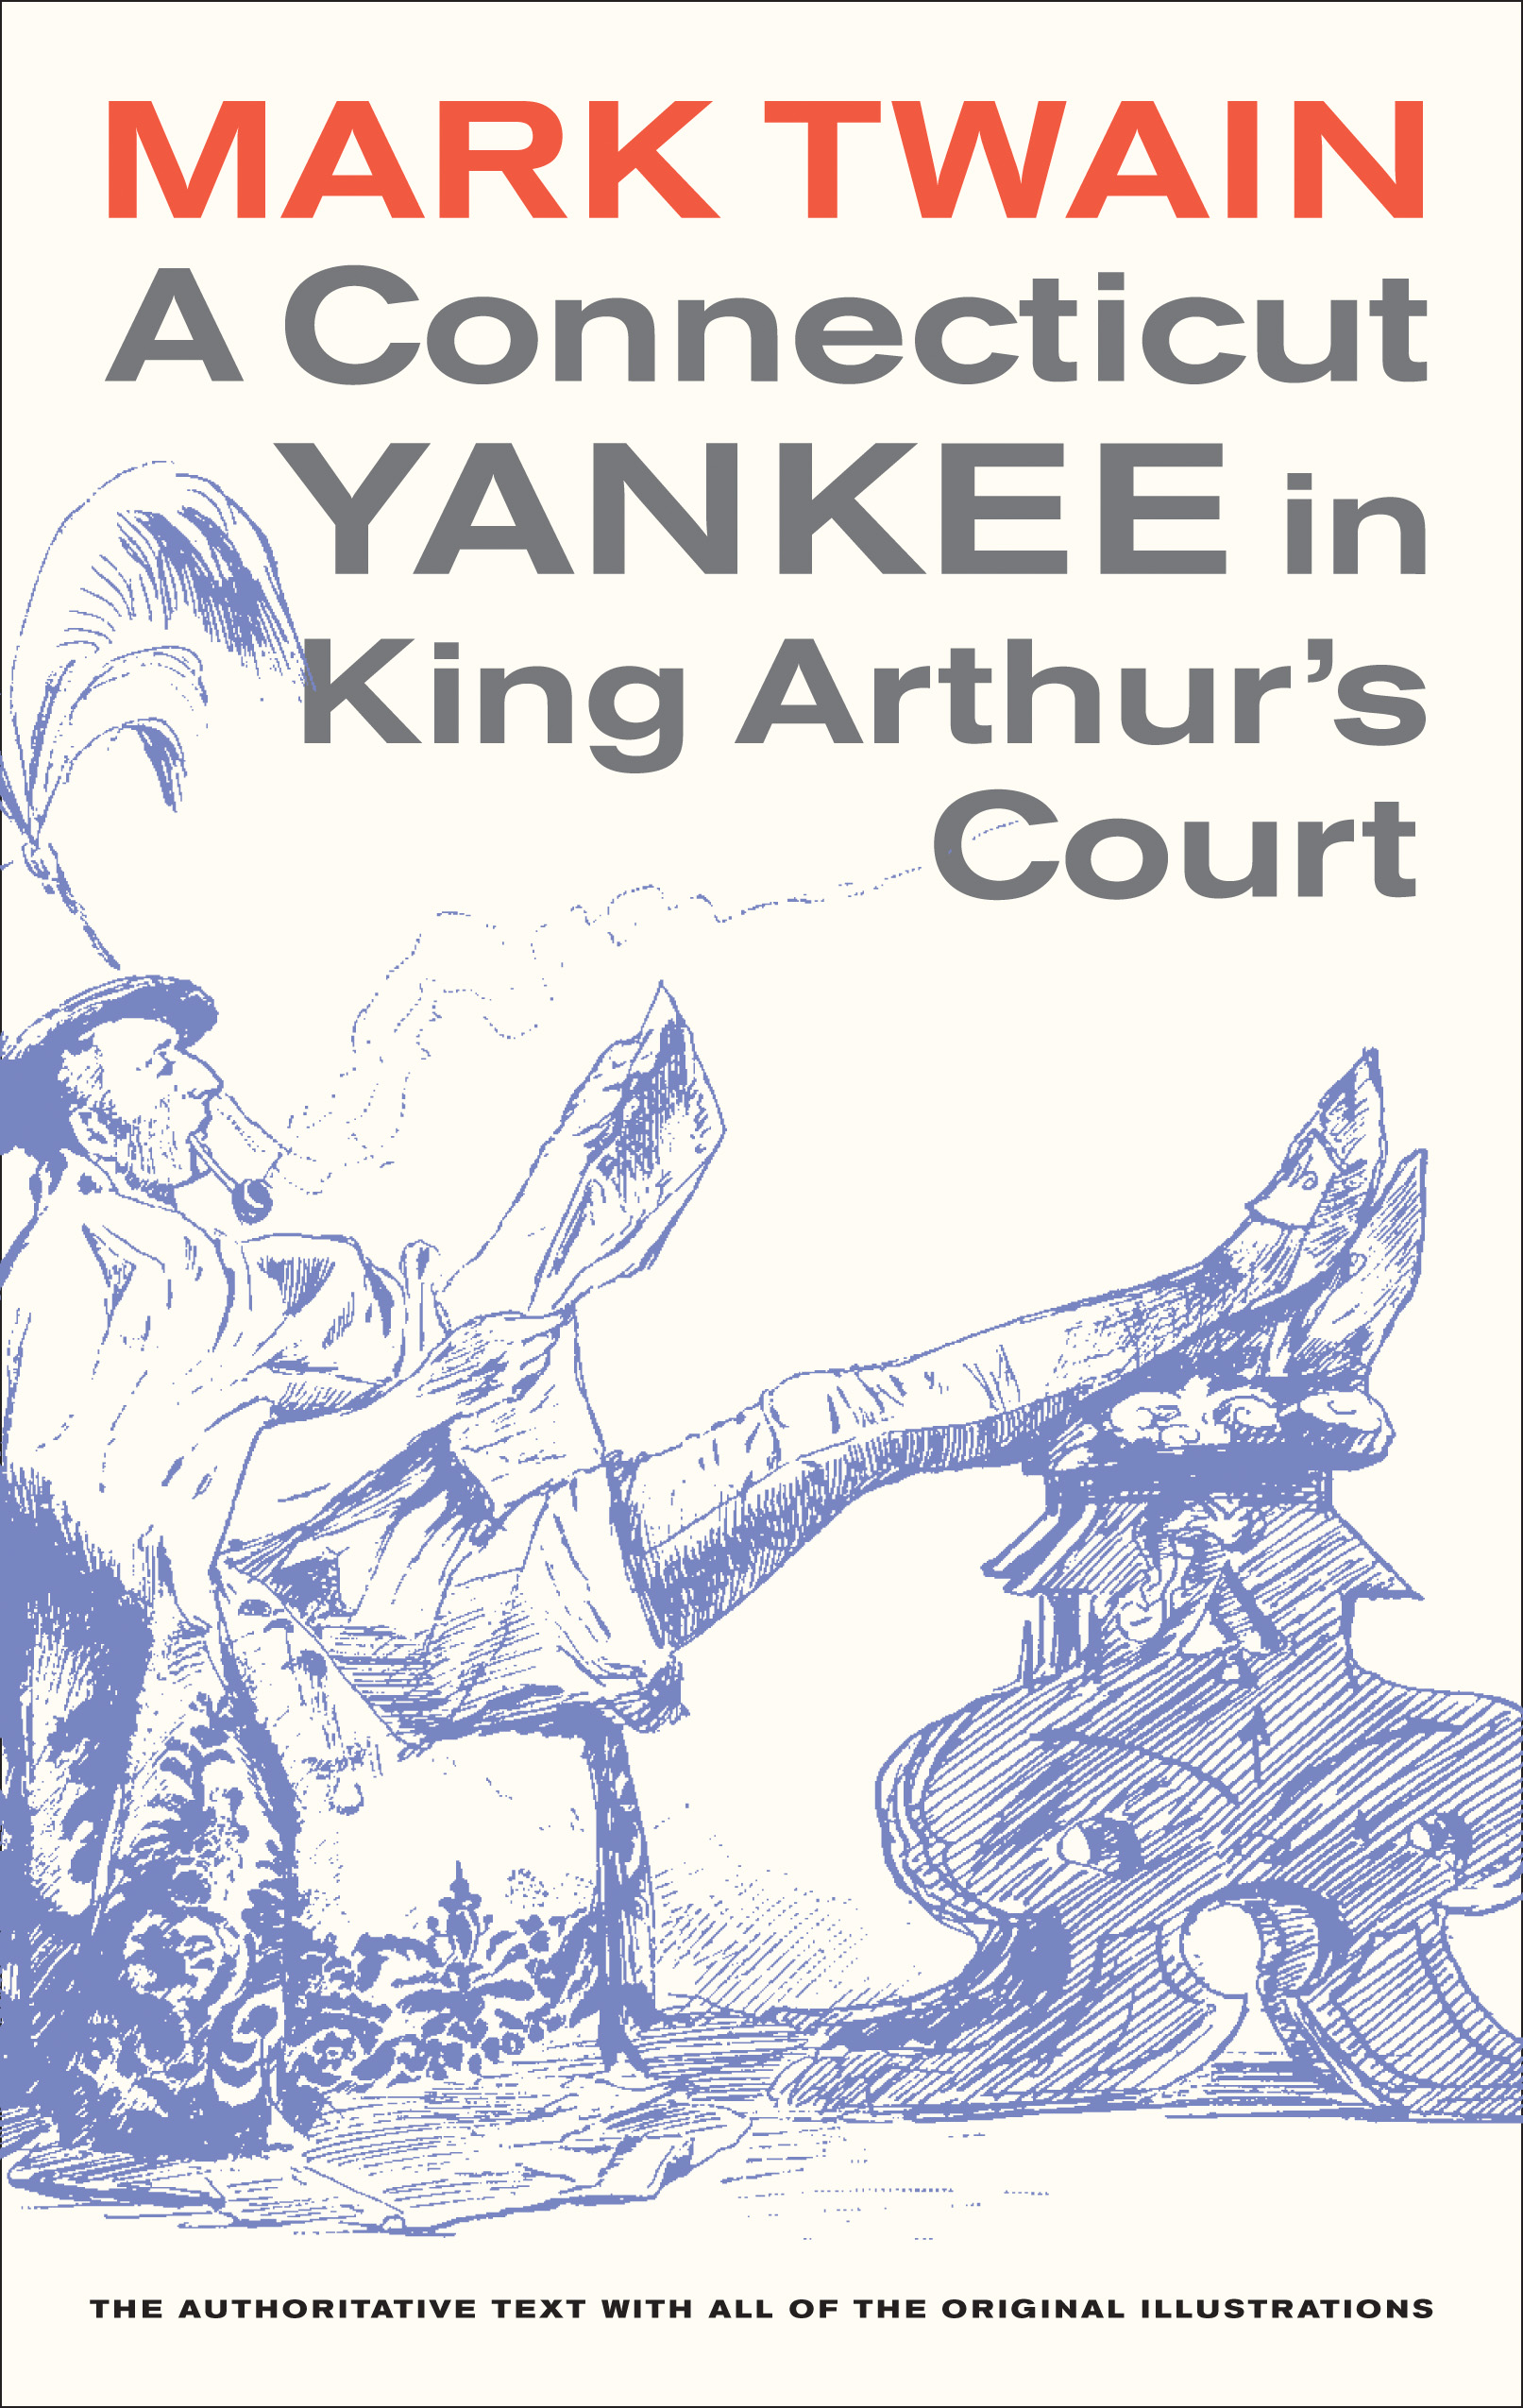 a connecticut yankee in king arthurs